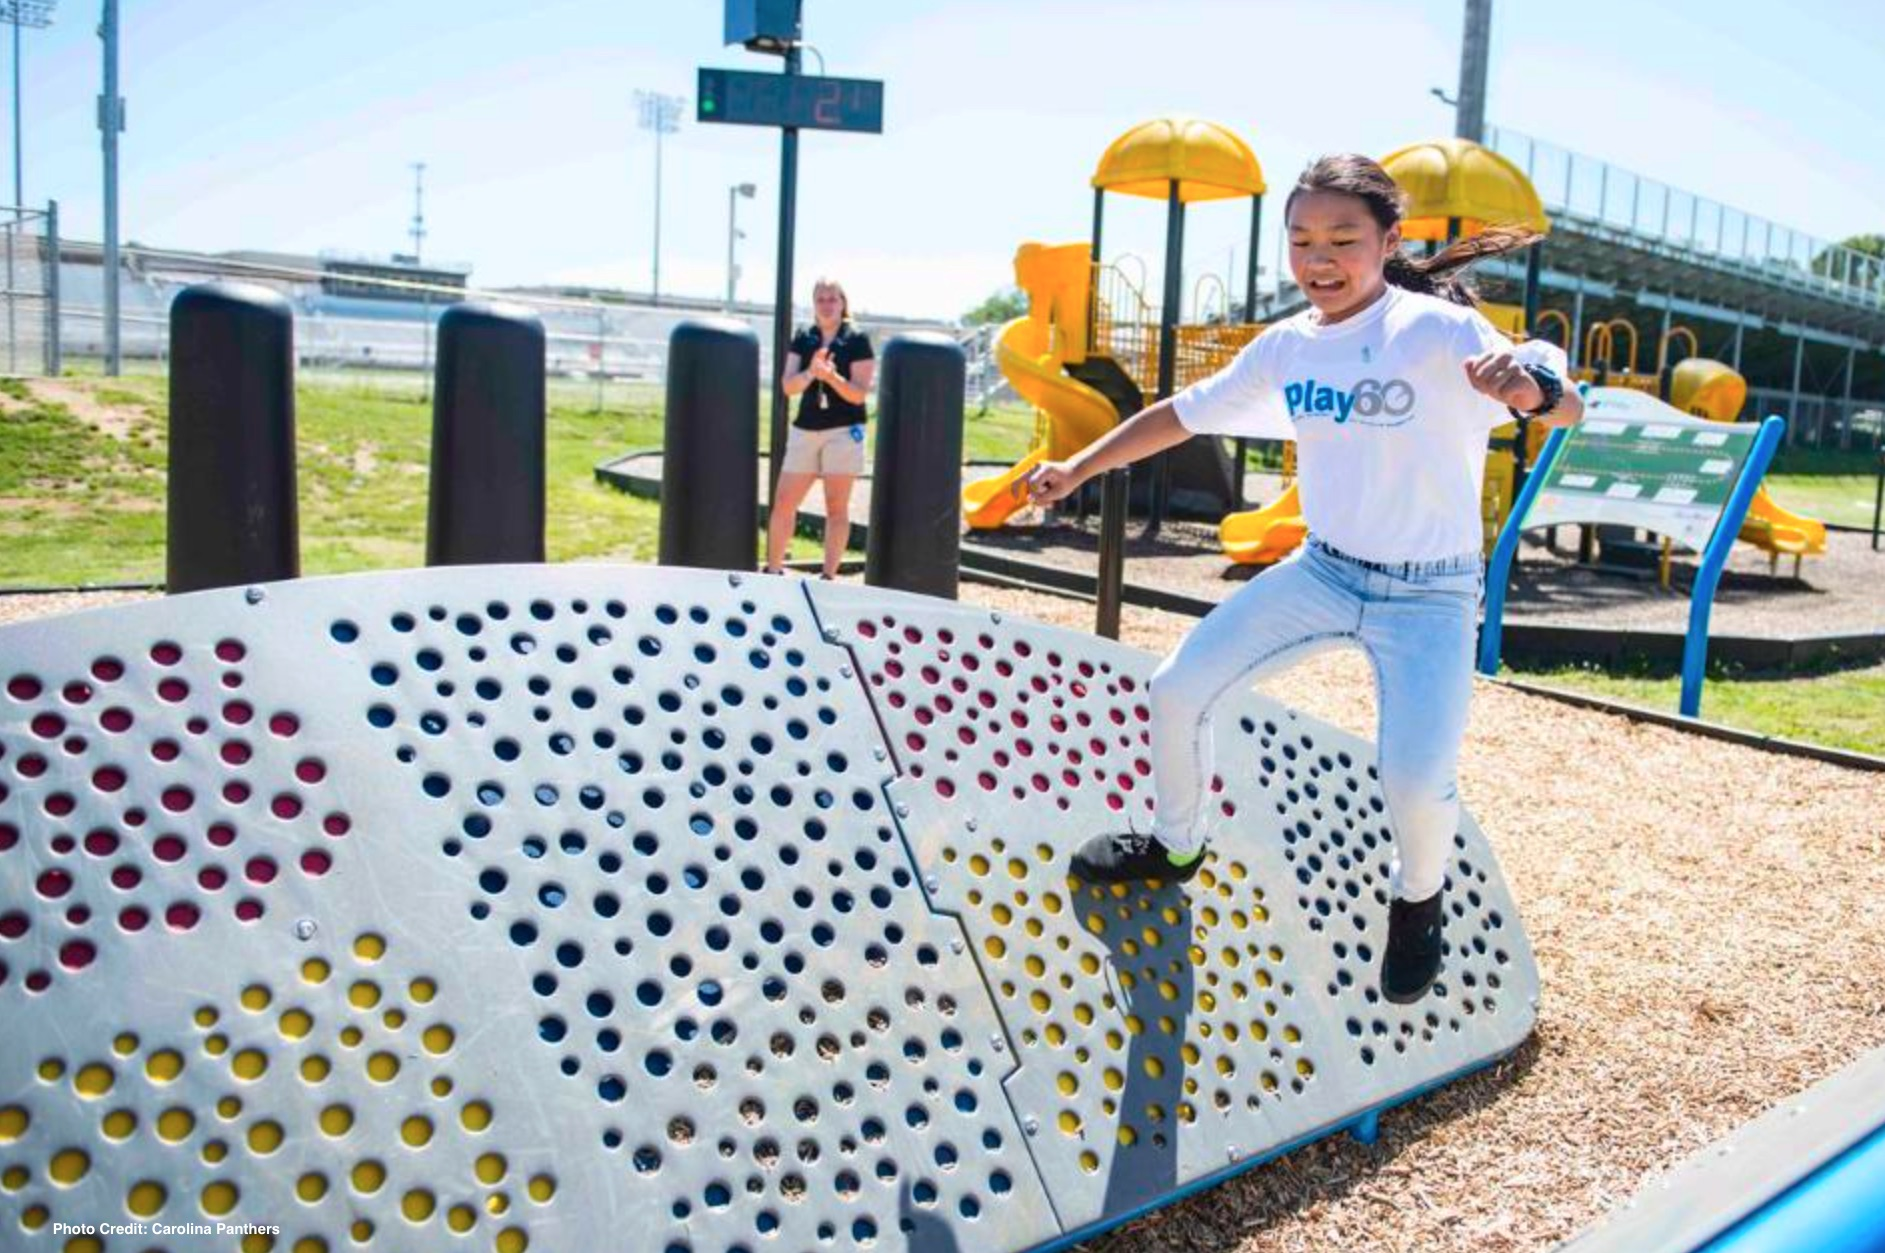 GameTime and Carolina Panthers Take School Recess to the Next Level